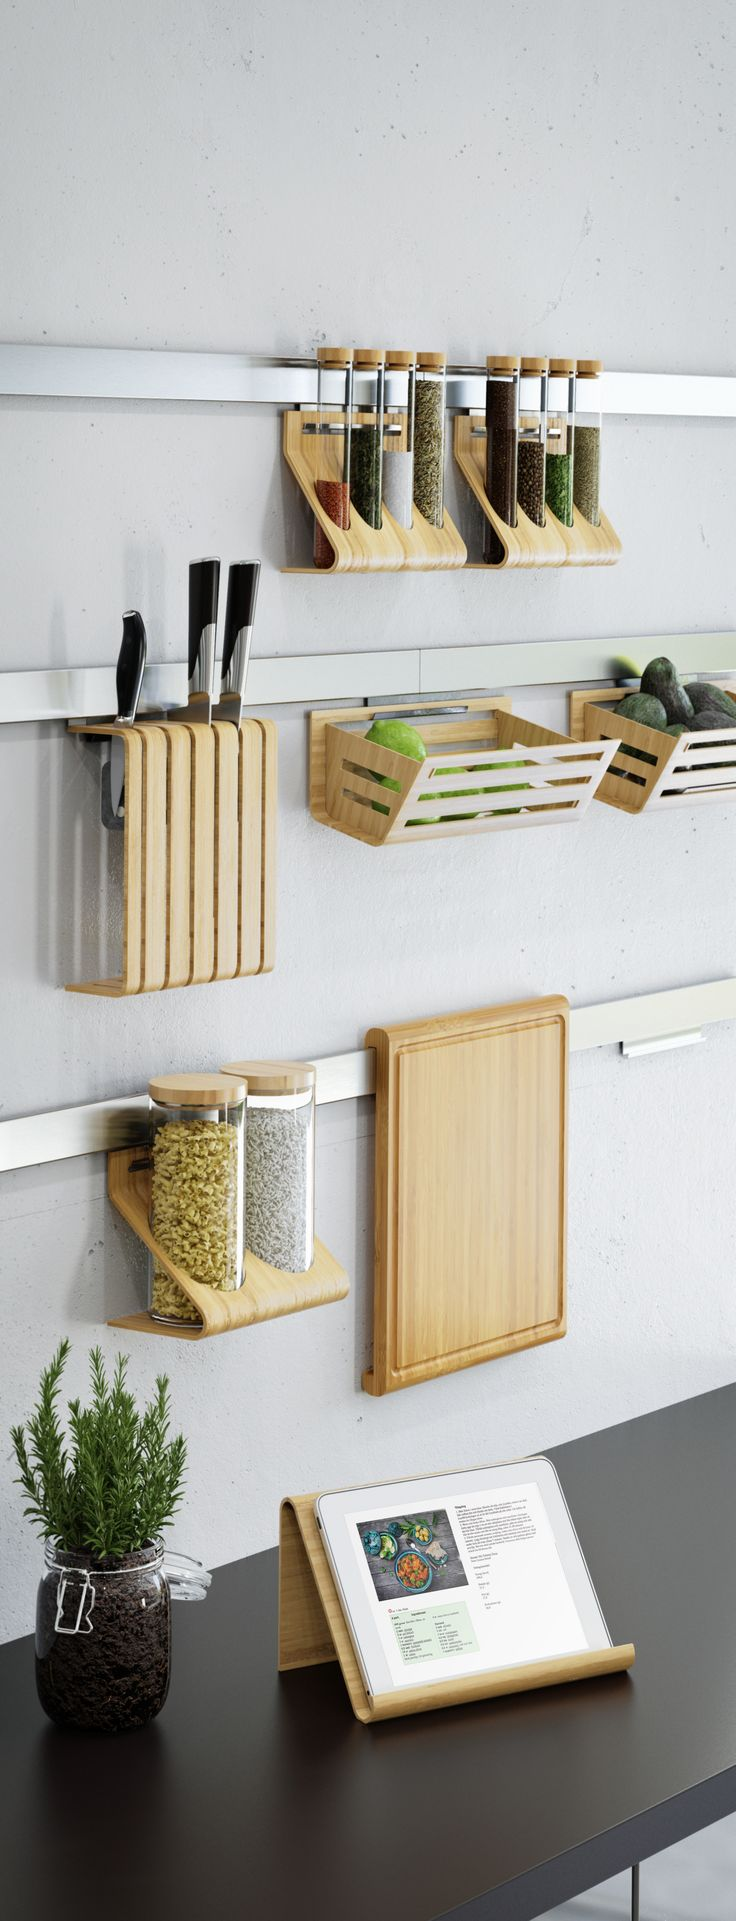 In Wall Storage Ideas Best 25 Kitchen Wall Storage Ideas On Pinterest  Kitchen Storage